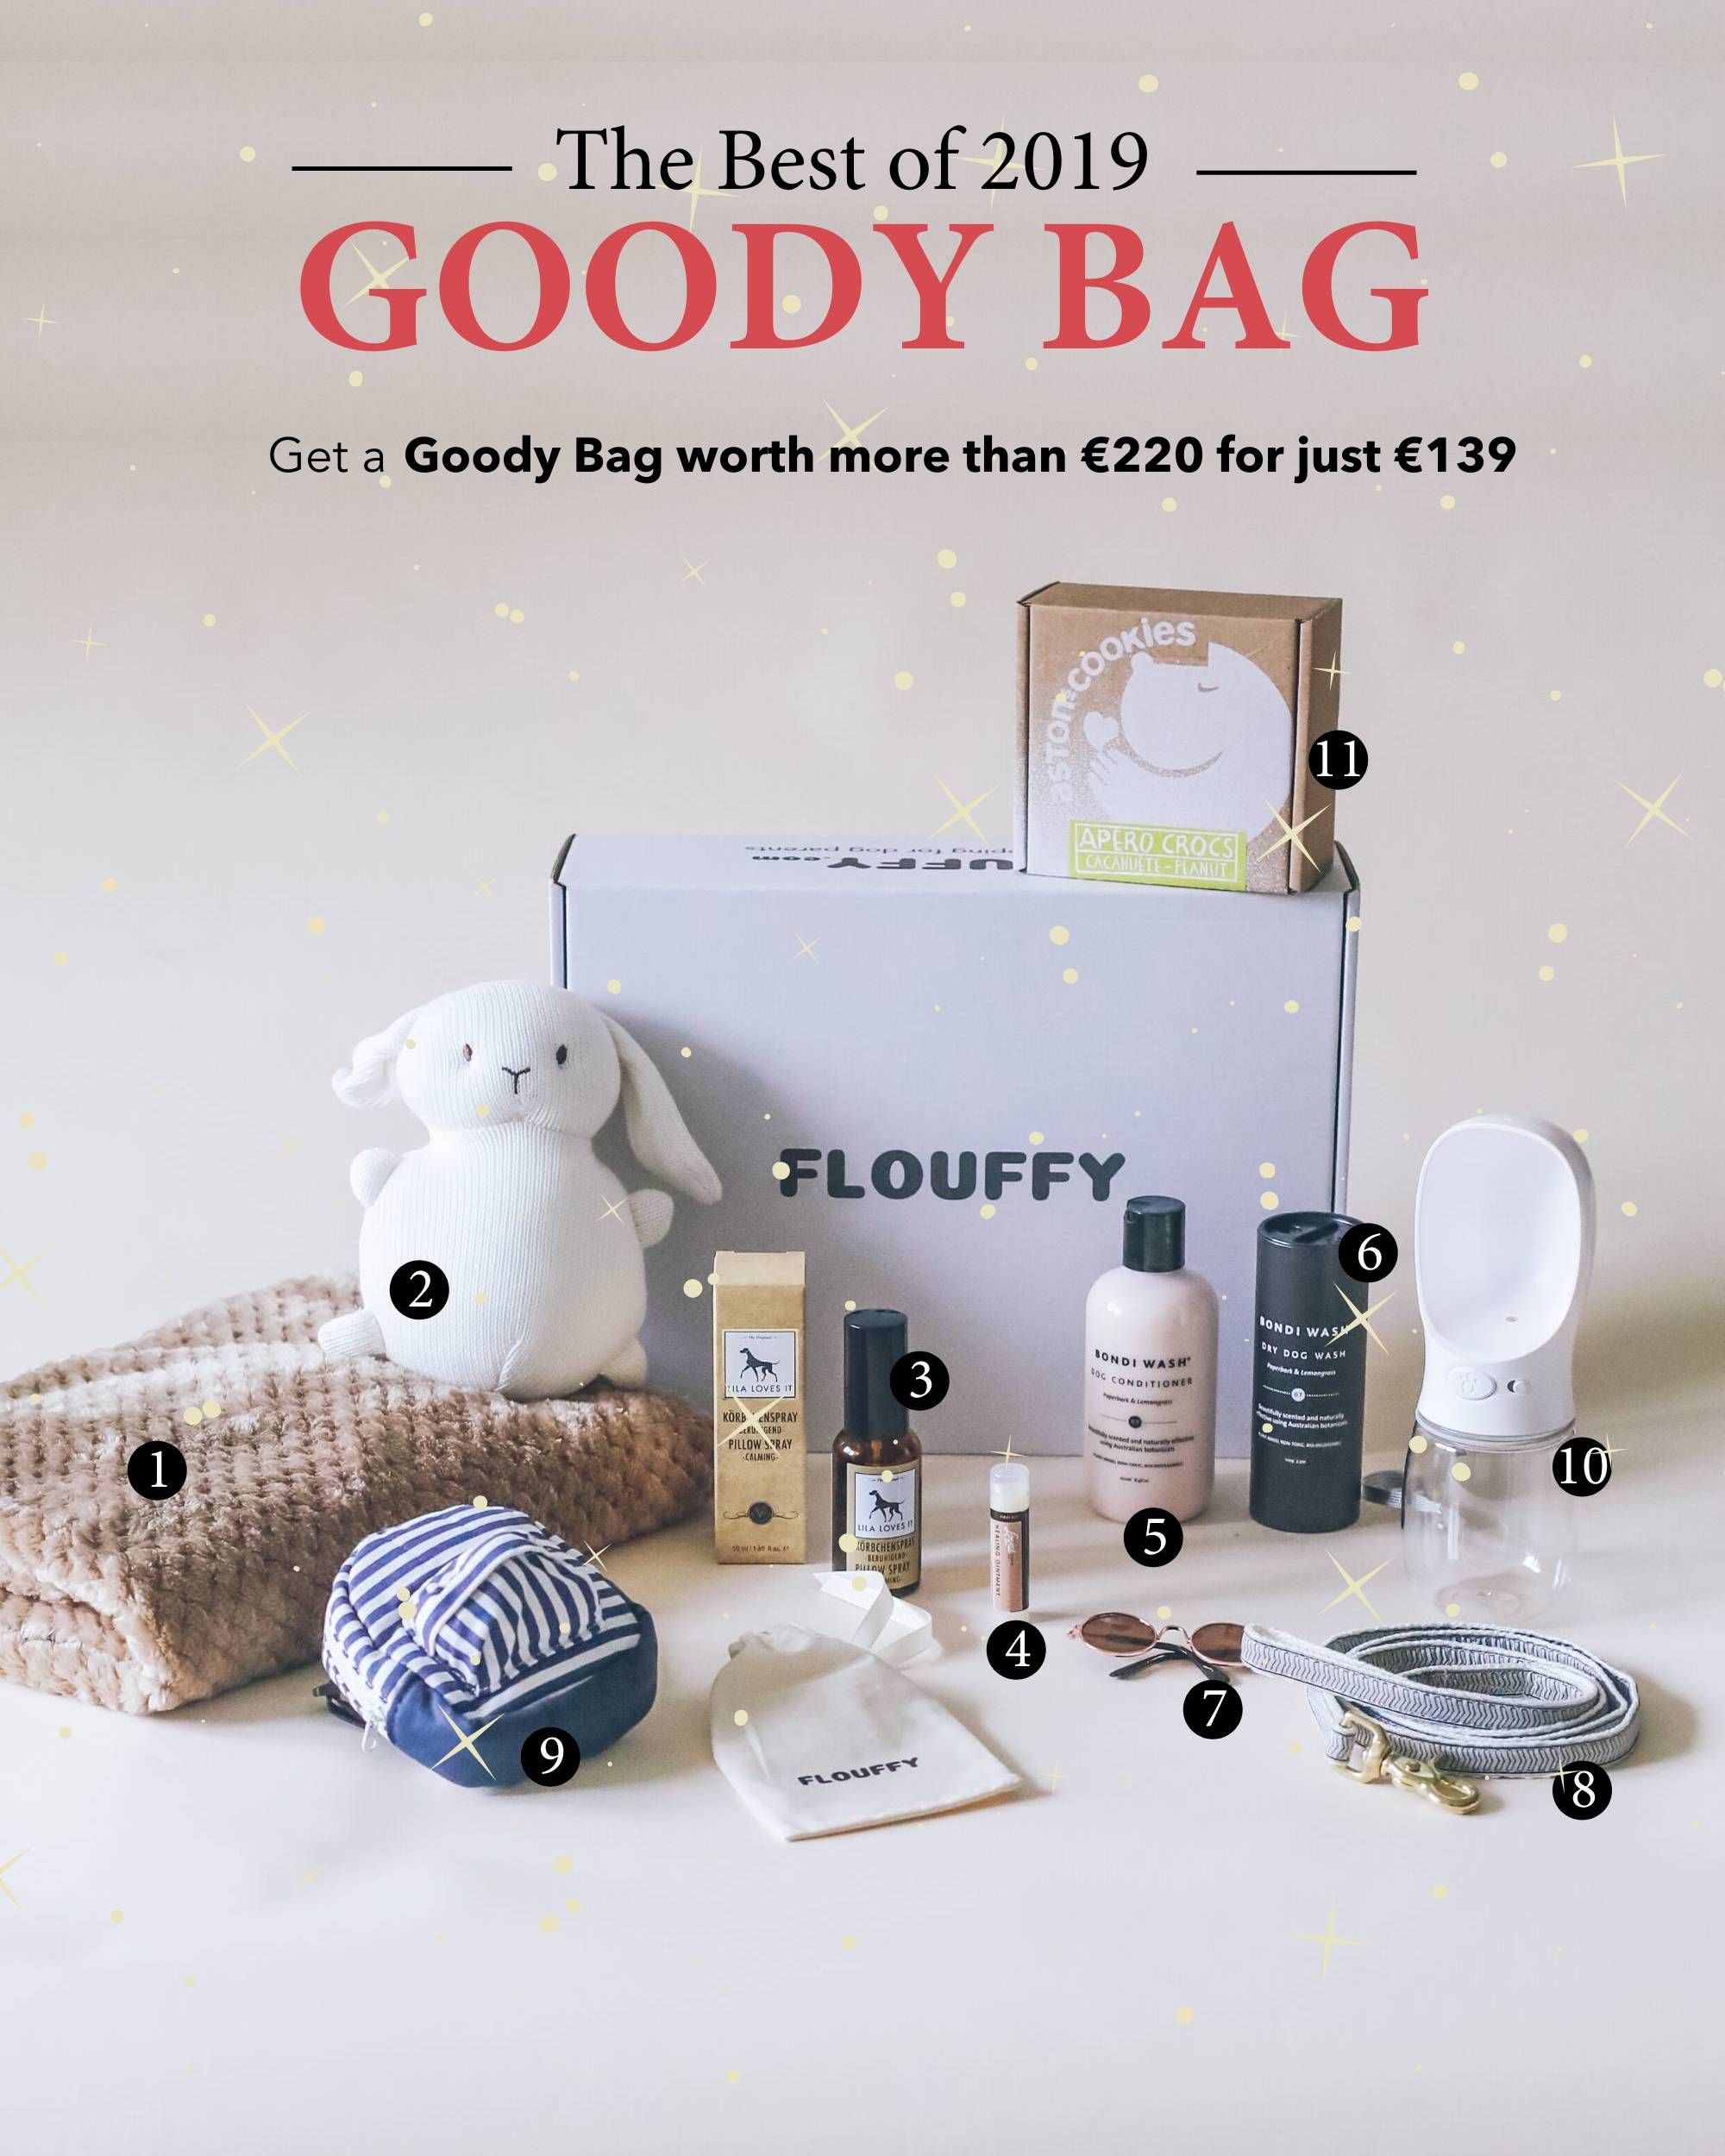 FLOUFFY The Best of 2019 Goody Bag